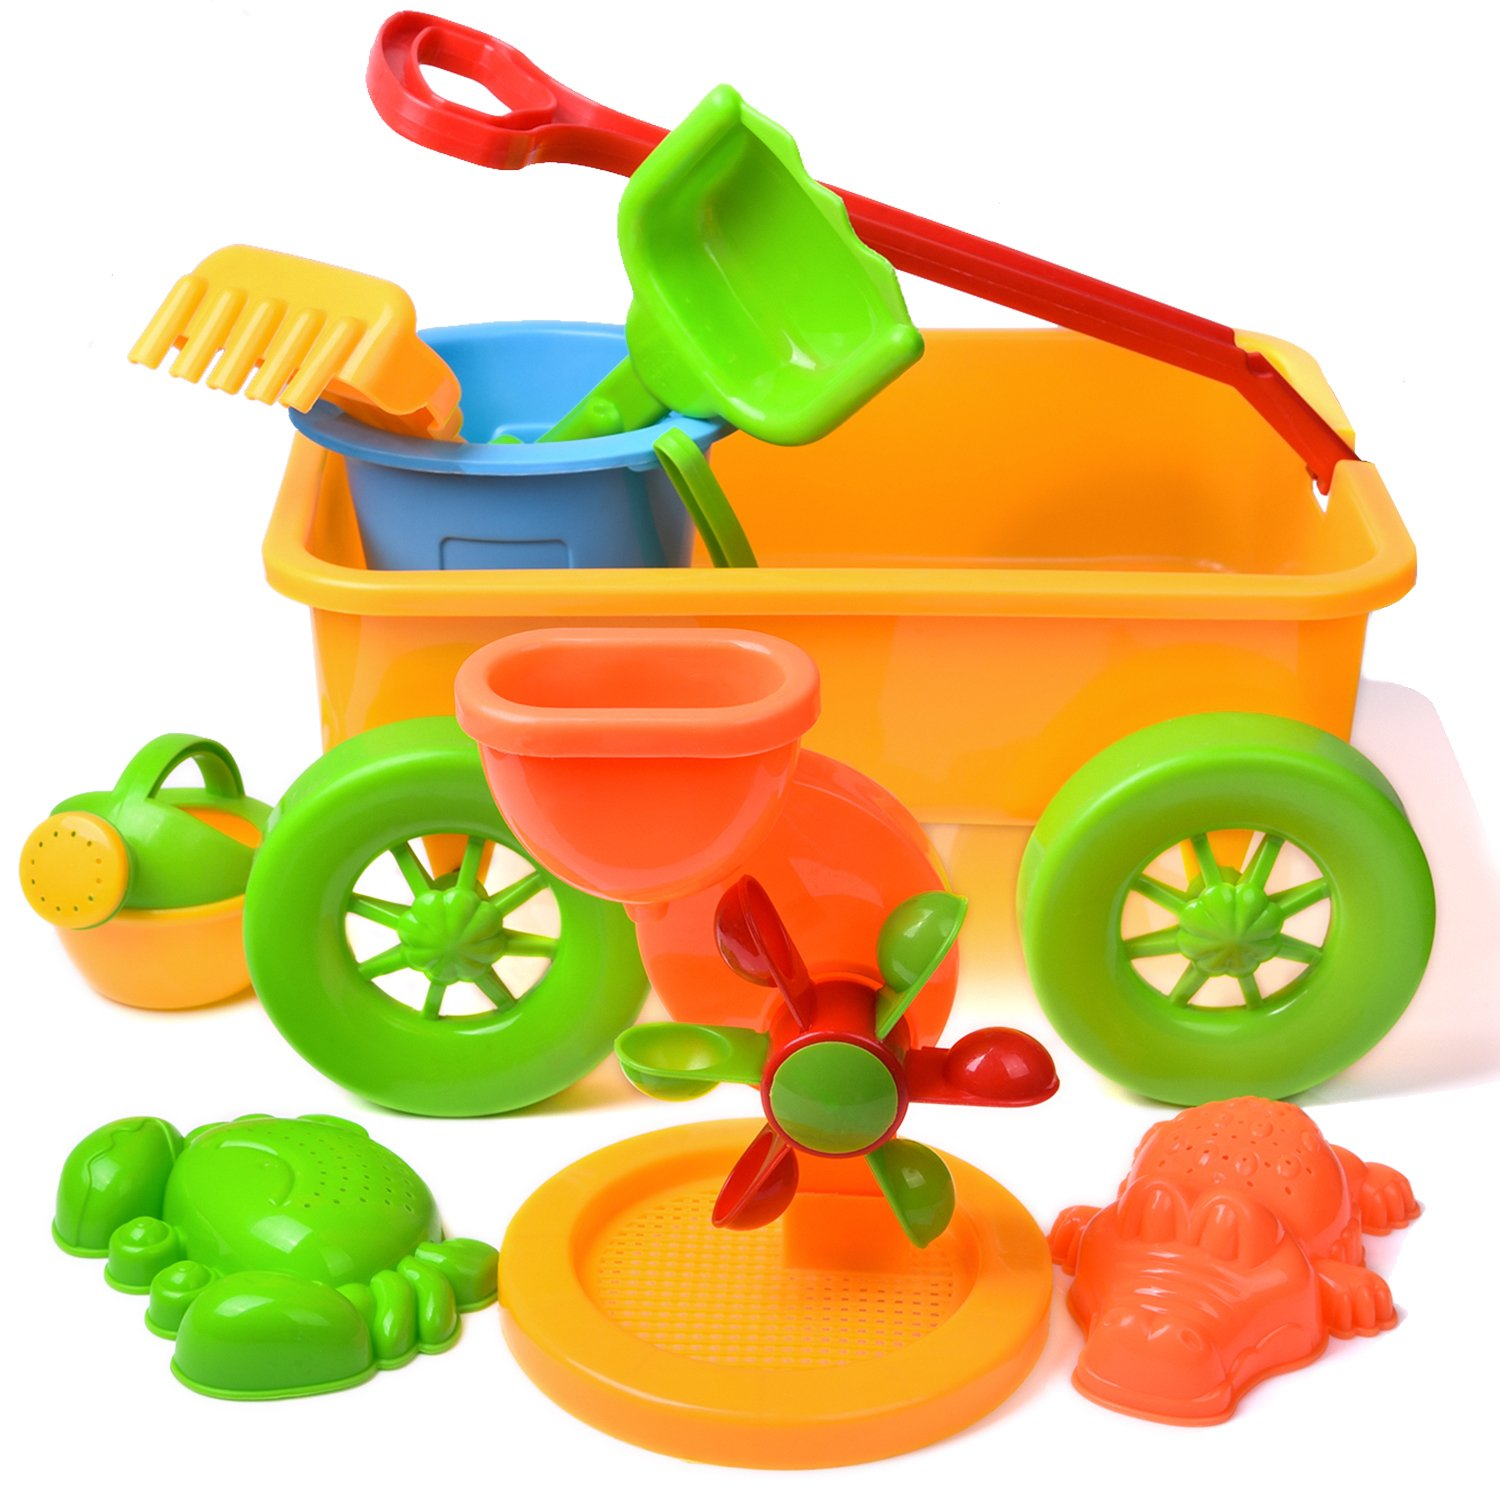 Beach Wagon Toys Set for Kids, Outdoor Sand Toys, Sandbox Toys Set with Big Sand Wagon and Other Beach Toys – 8 PCs